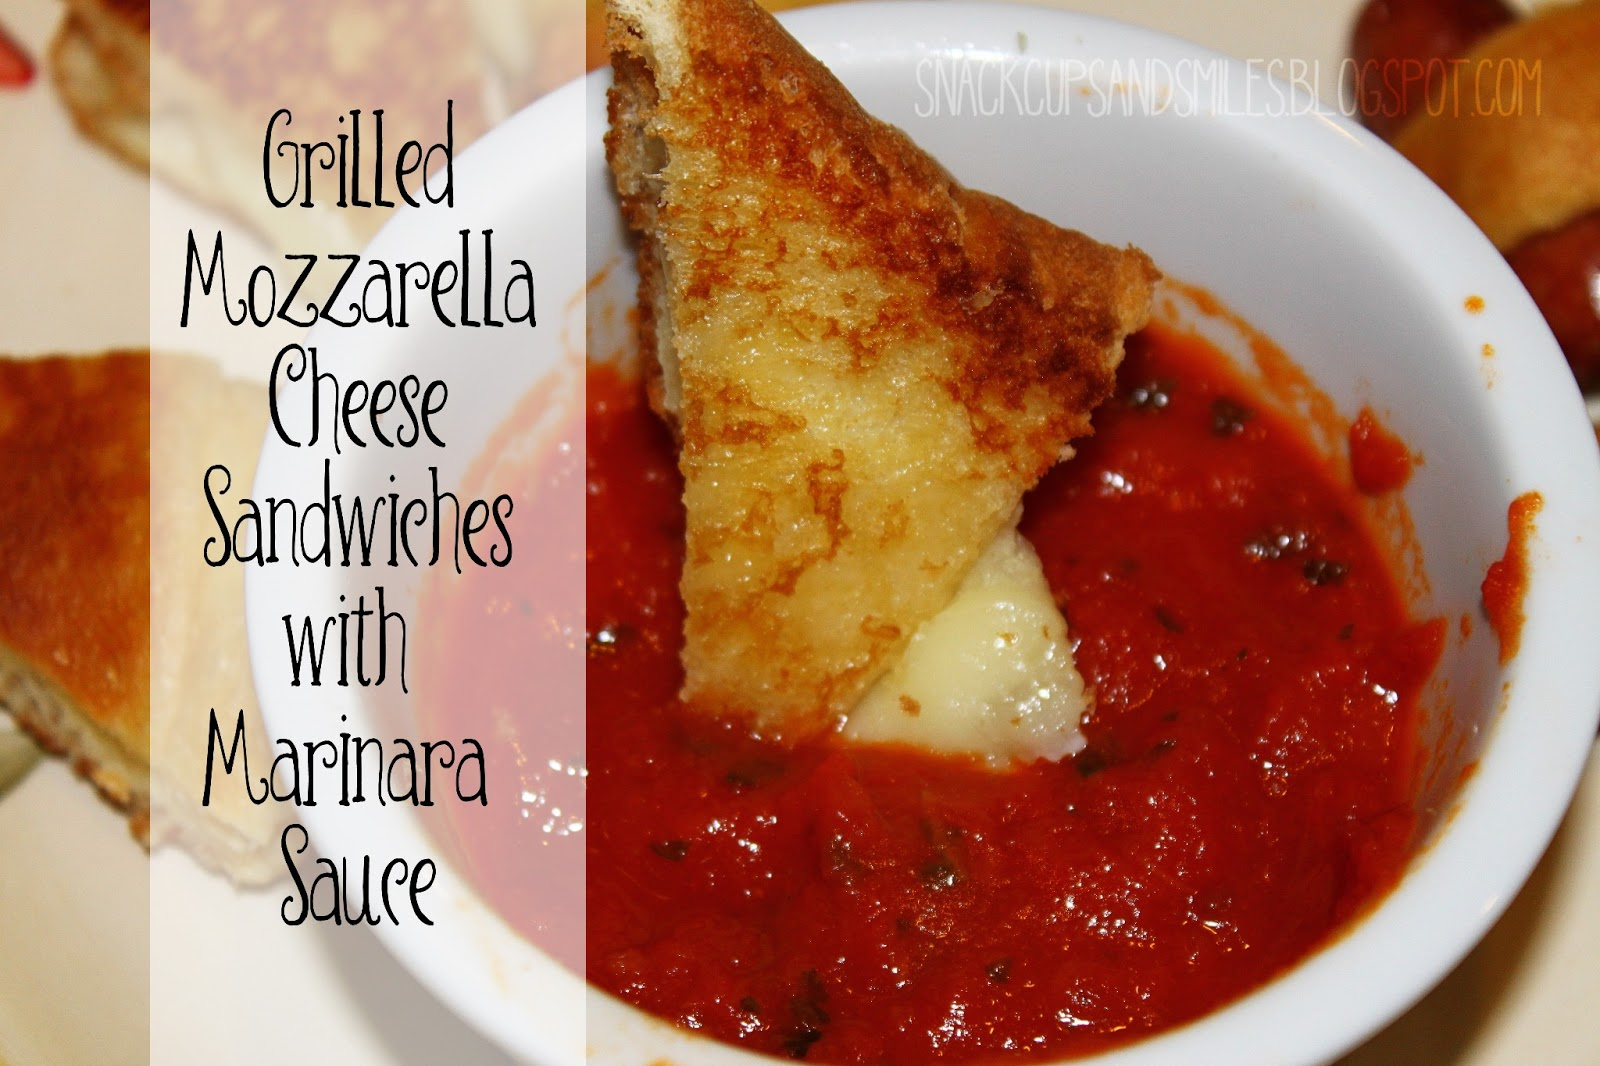 Grilled Mozzarella Cheese Sandwiches with Marinara Sauce #snackideas # ...